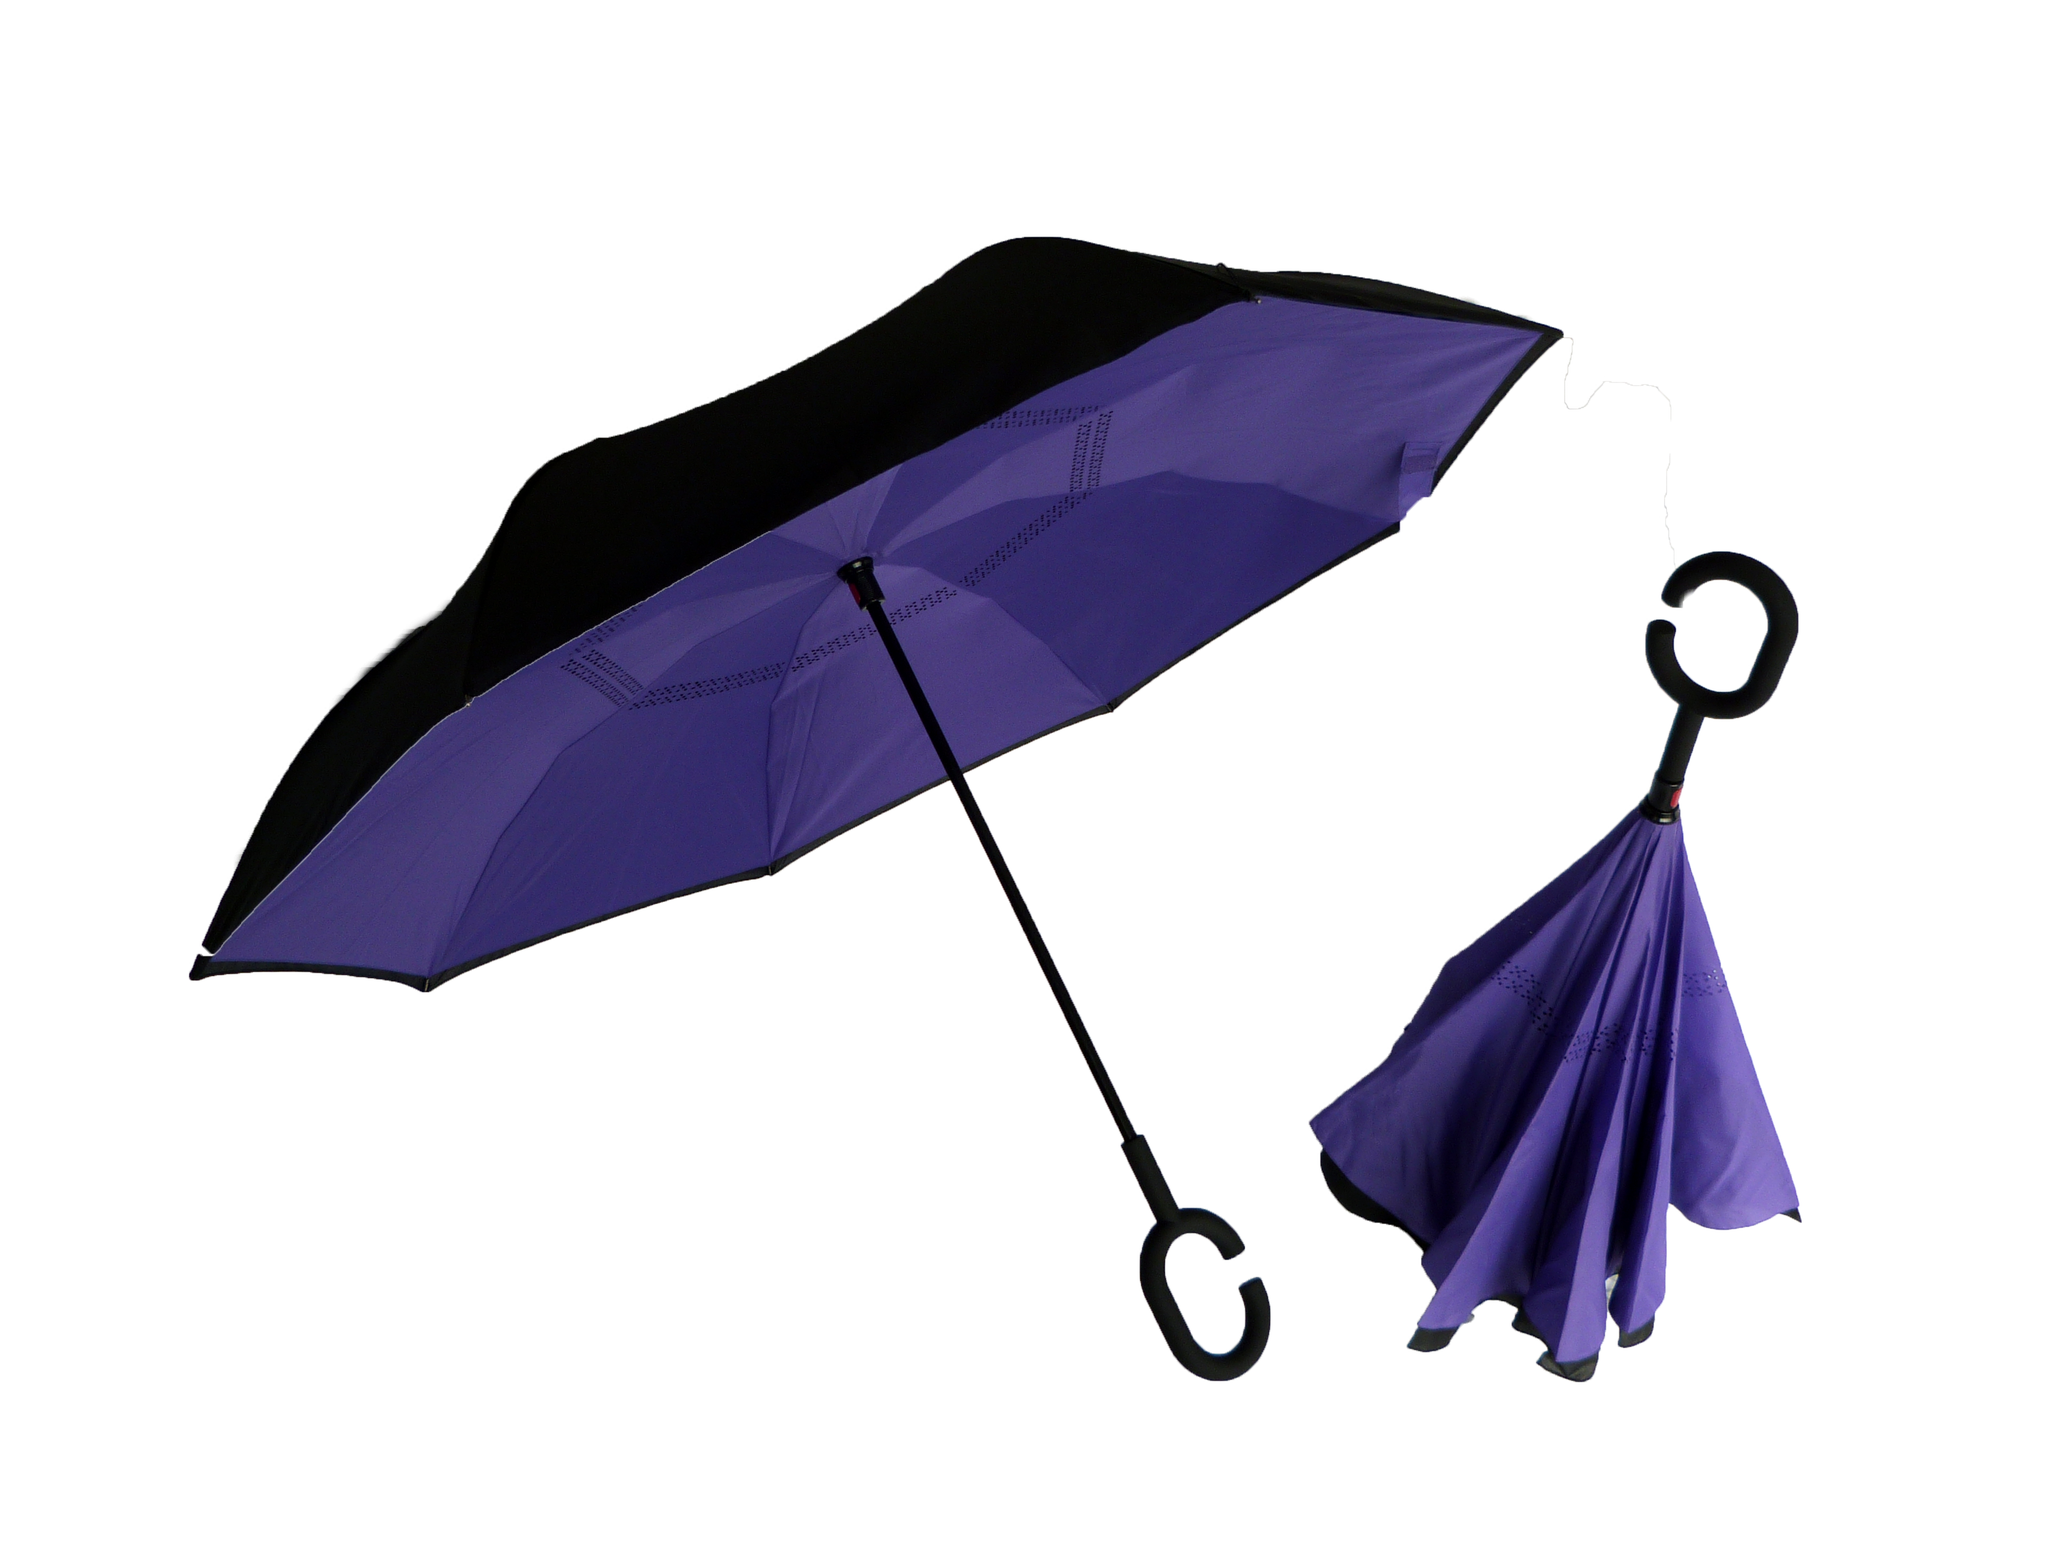 Inverted blue umbrella